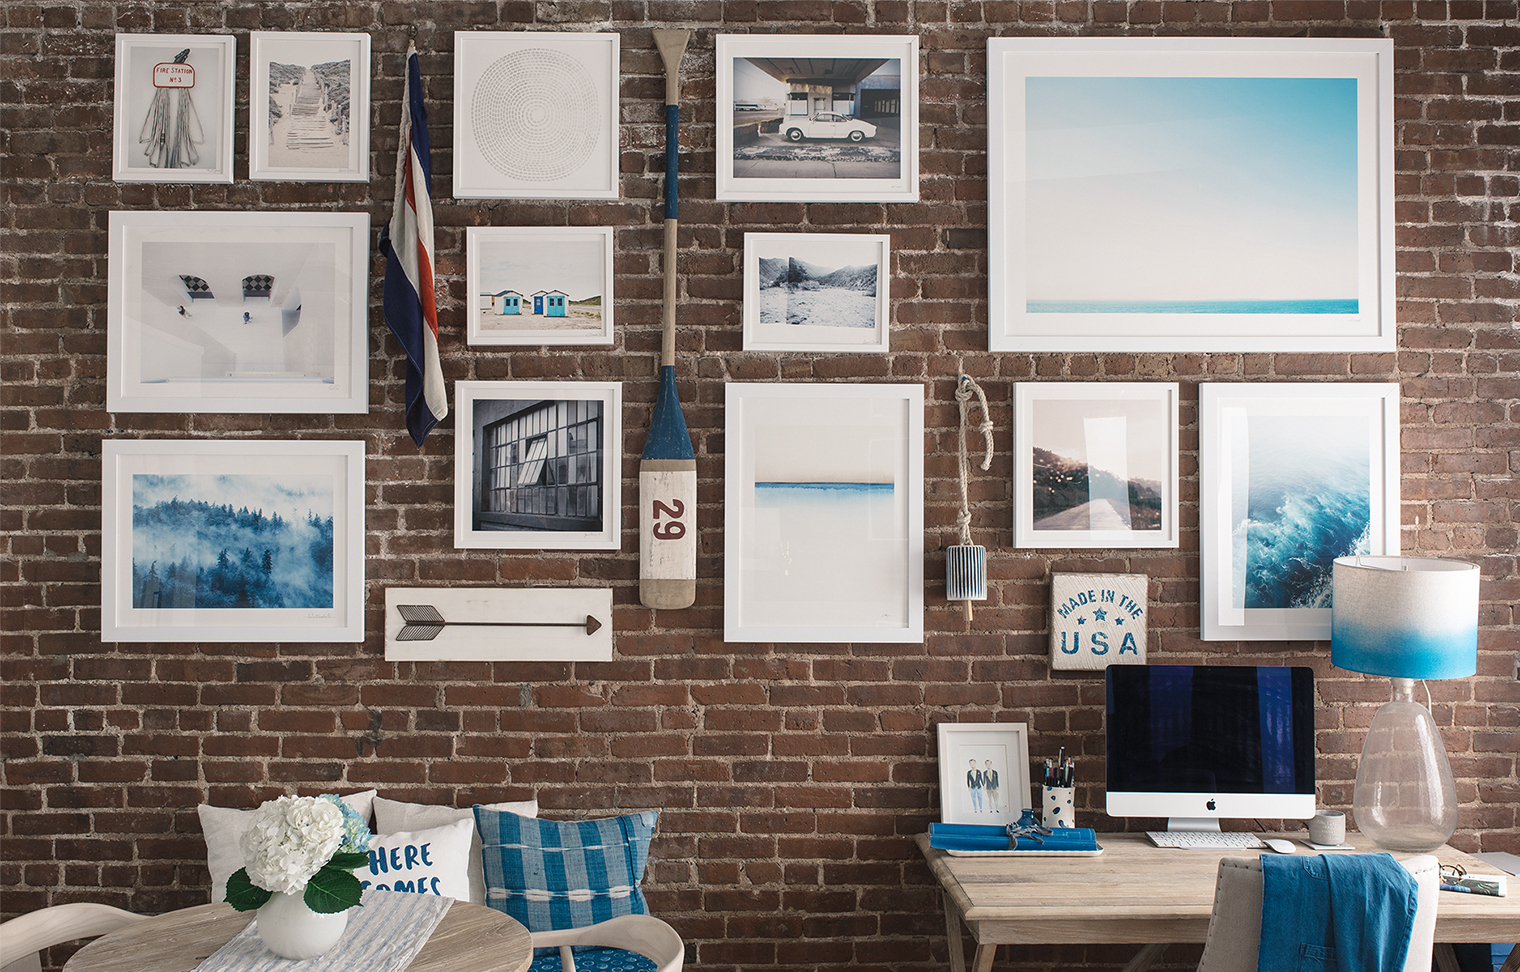 How To Hang A Gallery Wall On Exposed Brick Walls Bright